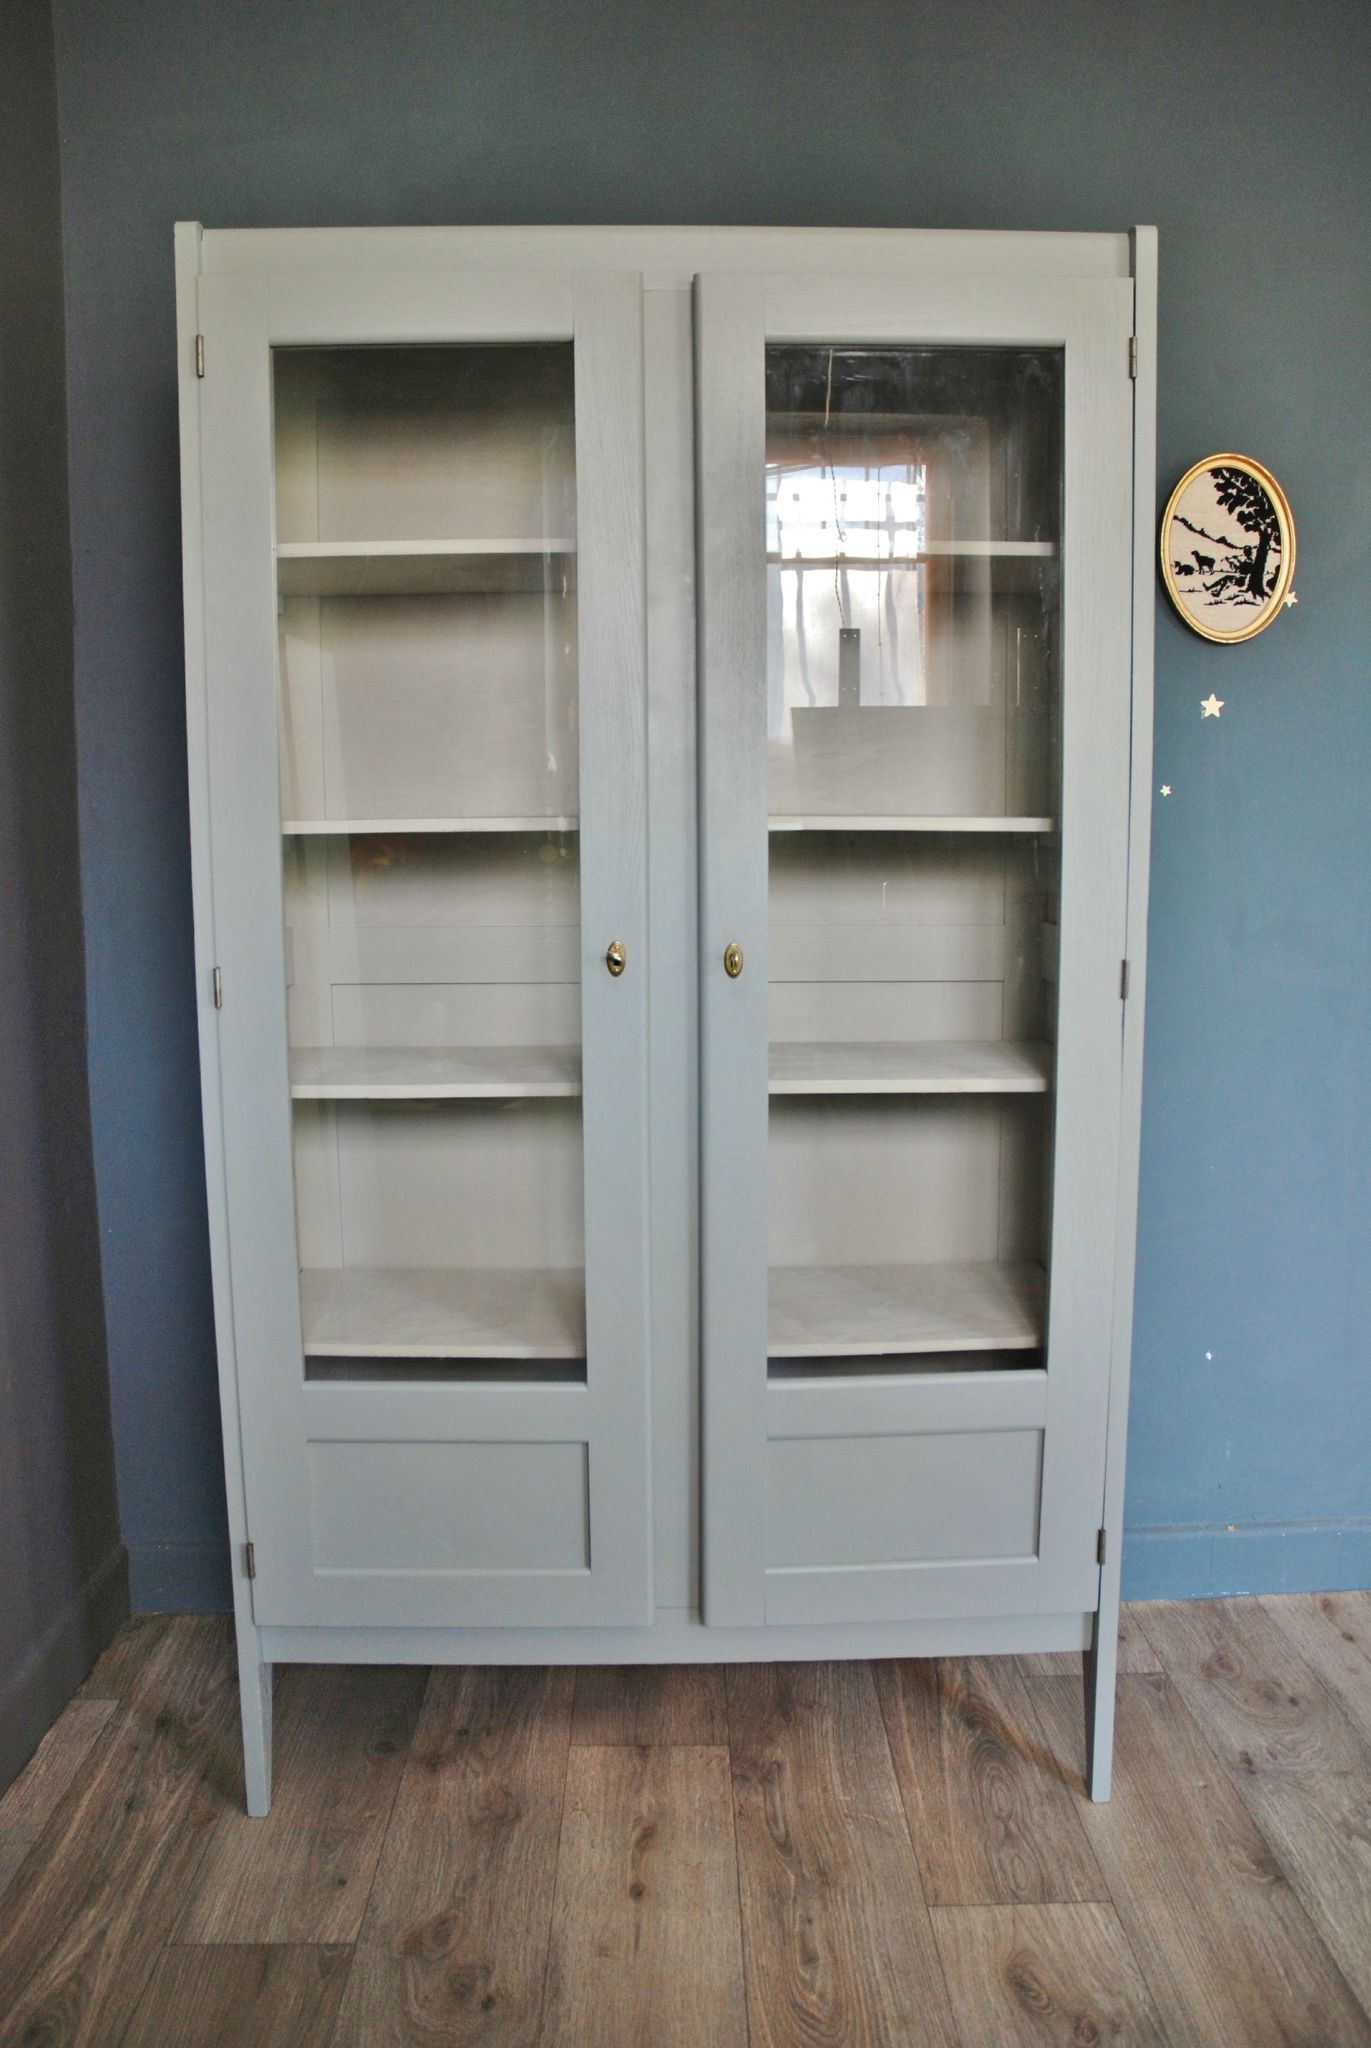 ancienne armoire vitr e gris bleu vendue atelier vintage pinterest renovation meuble. Black Bedroom Furniture Sets. Home Design Ideas